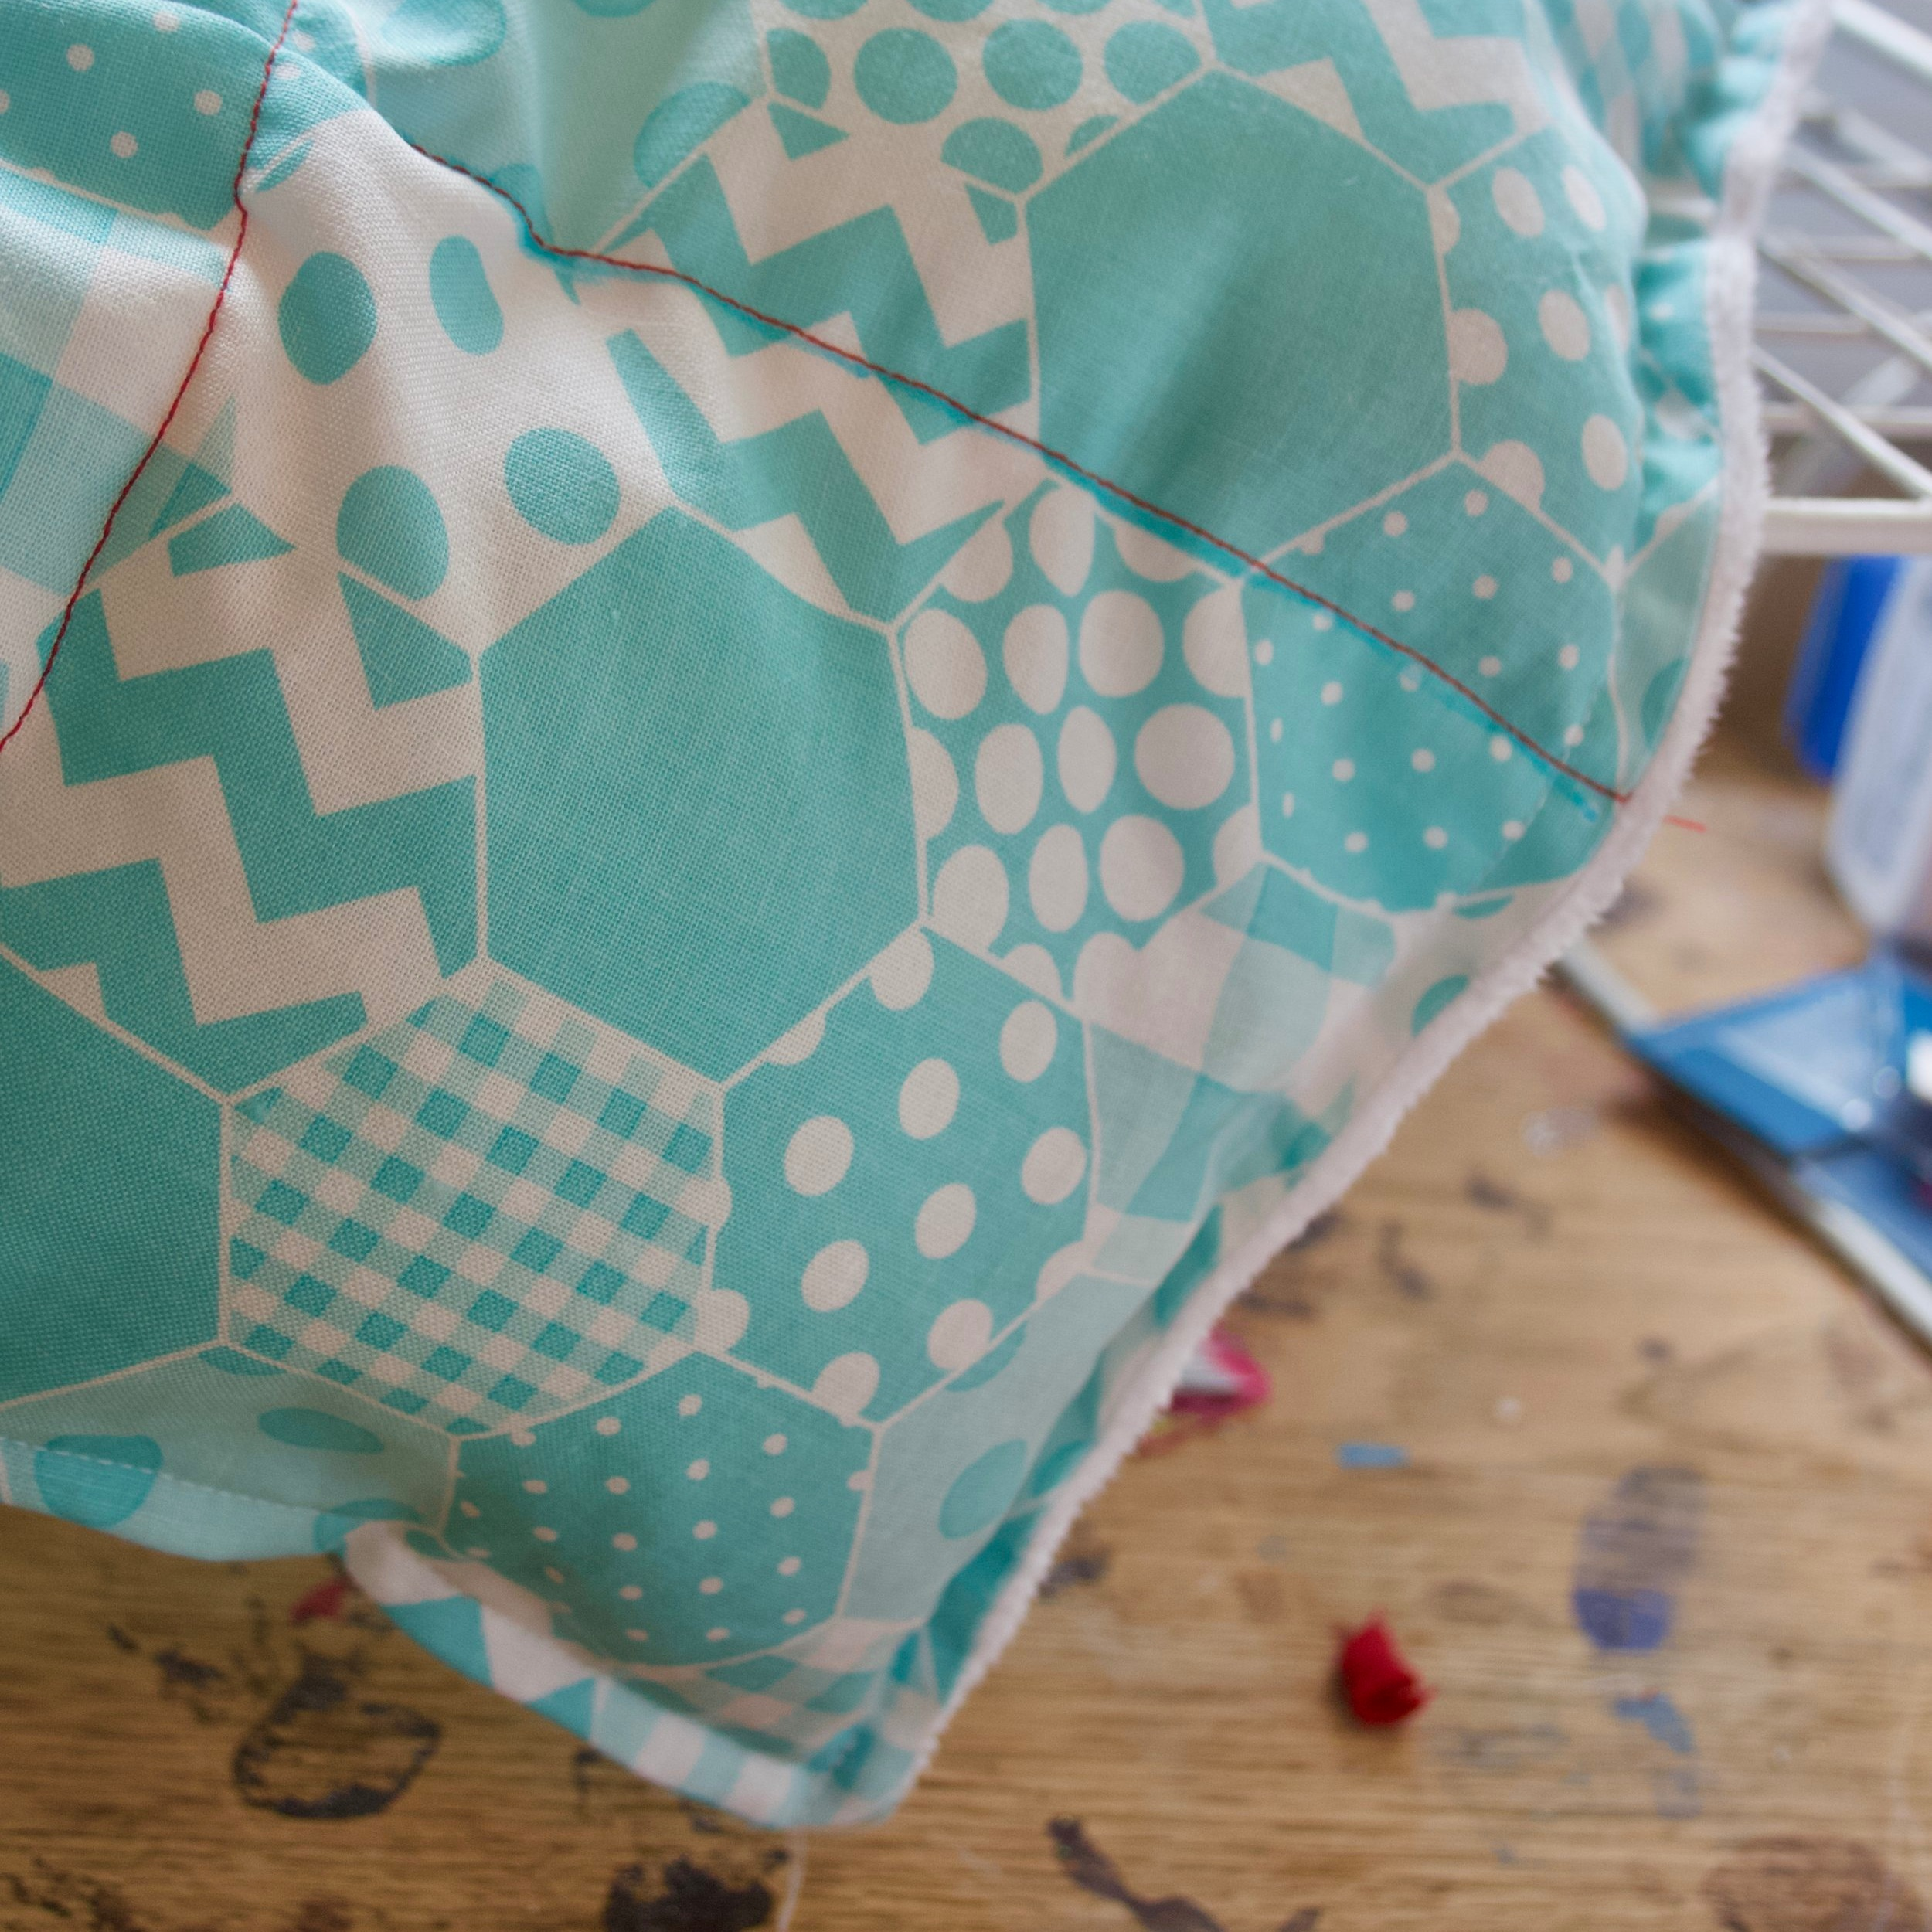 How to Make an Easy Weighted Blanket - By jessica farthing